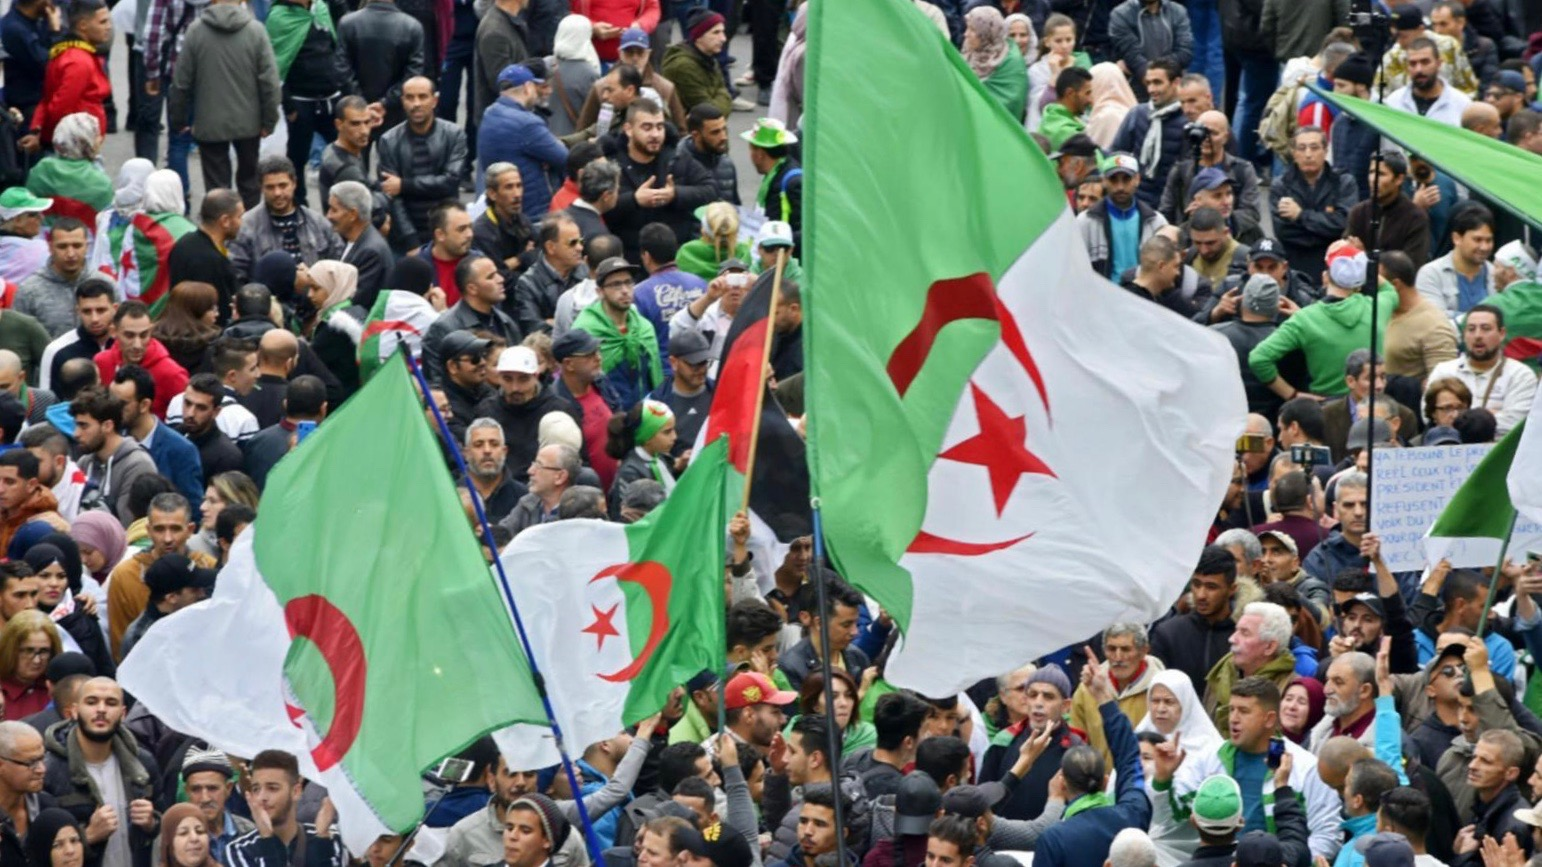 Hirak activists hospitalized Algeria